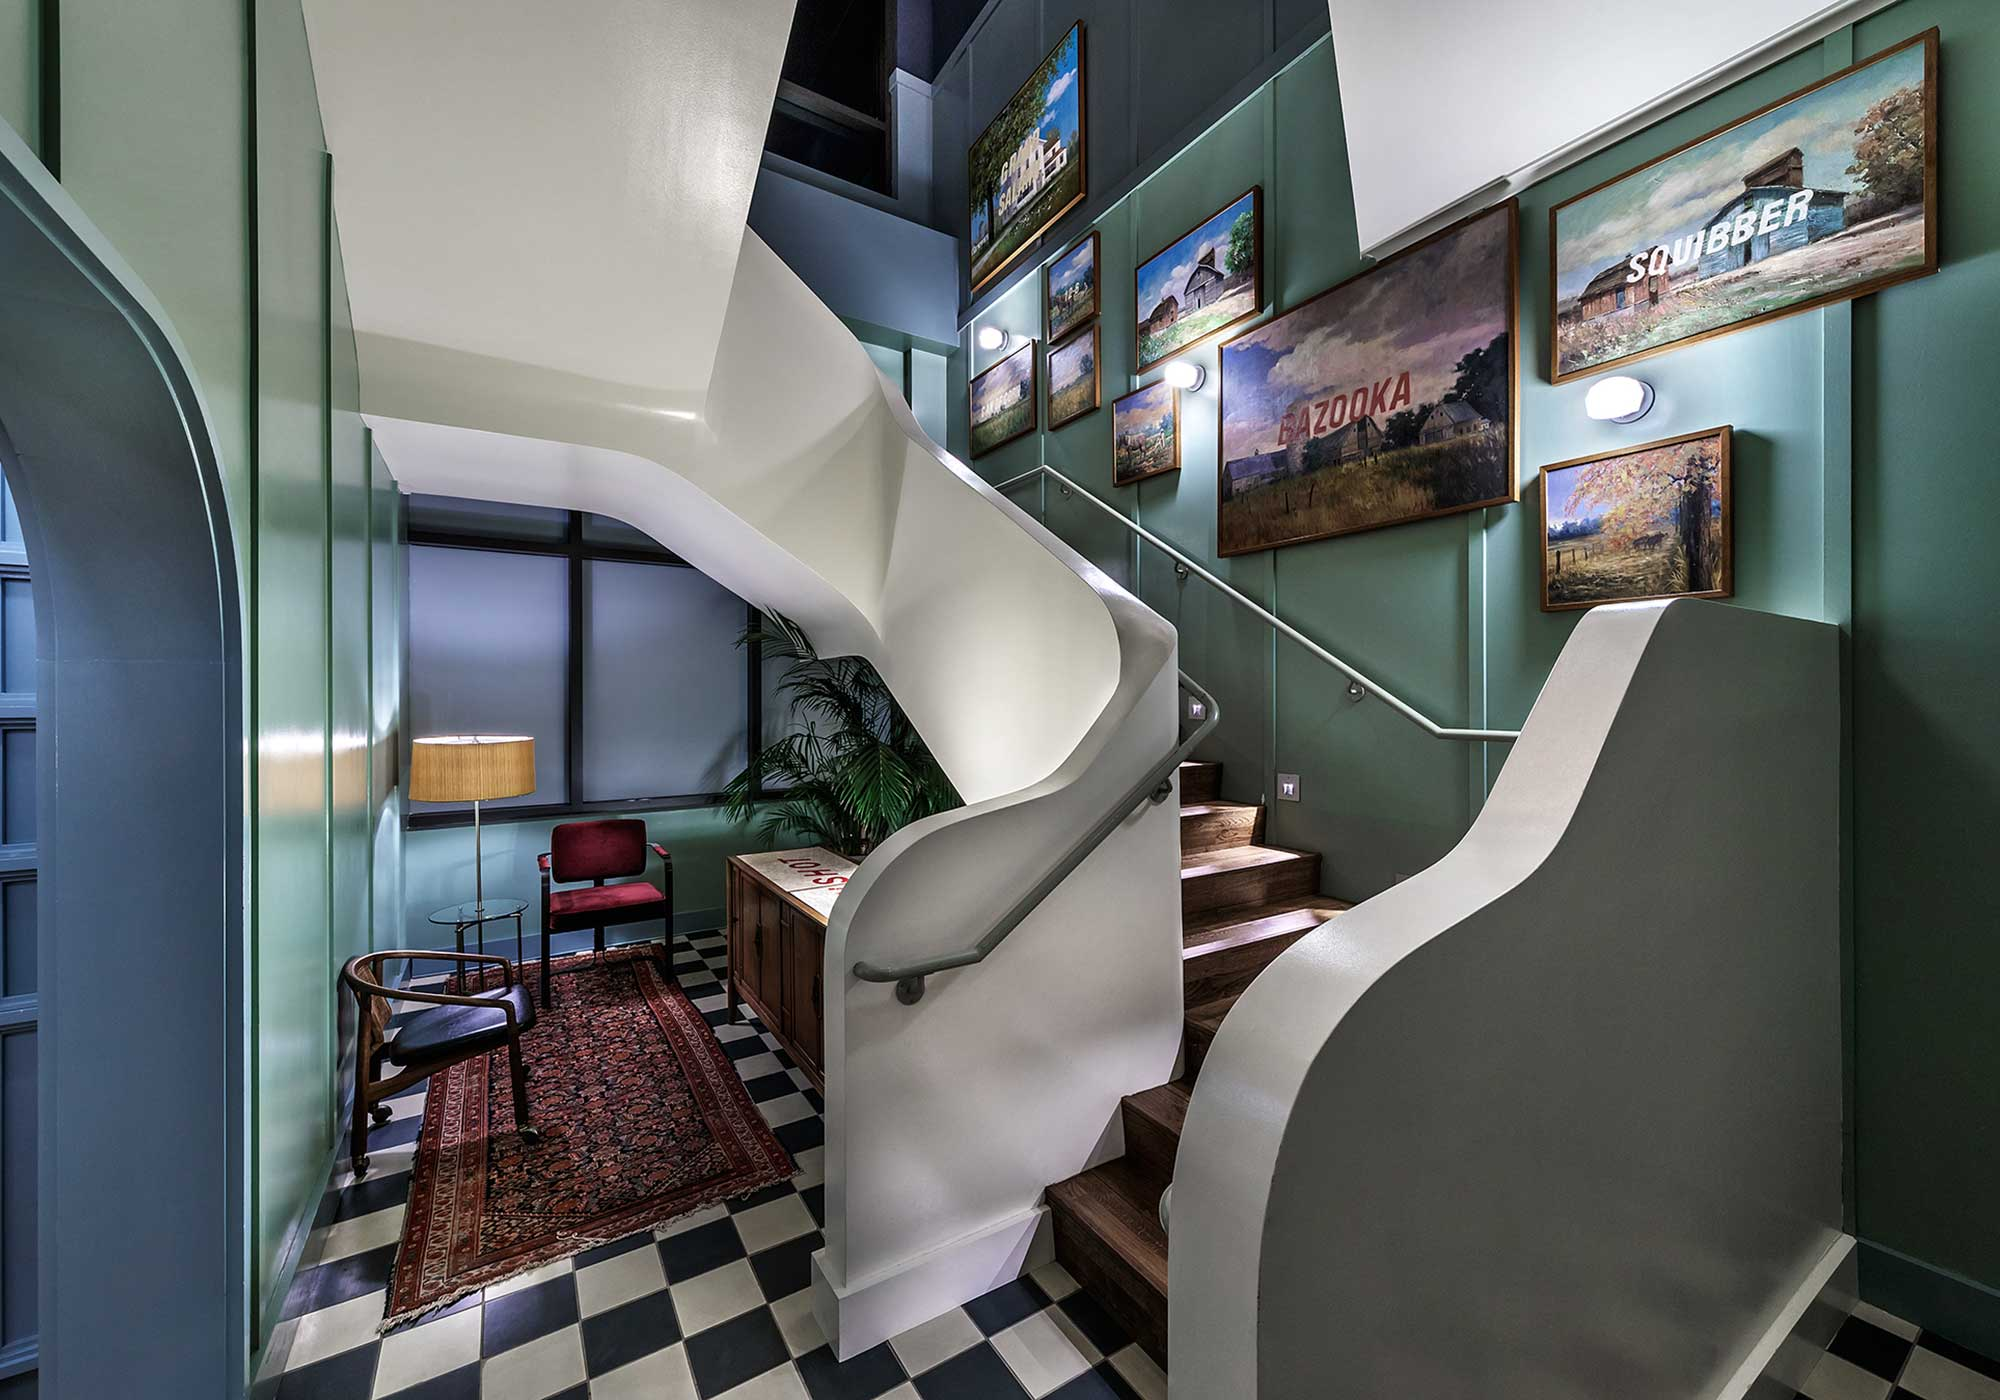 Staircase with art on the wall